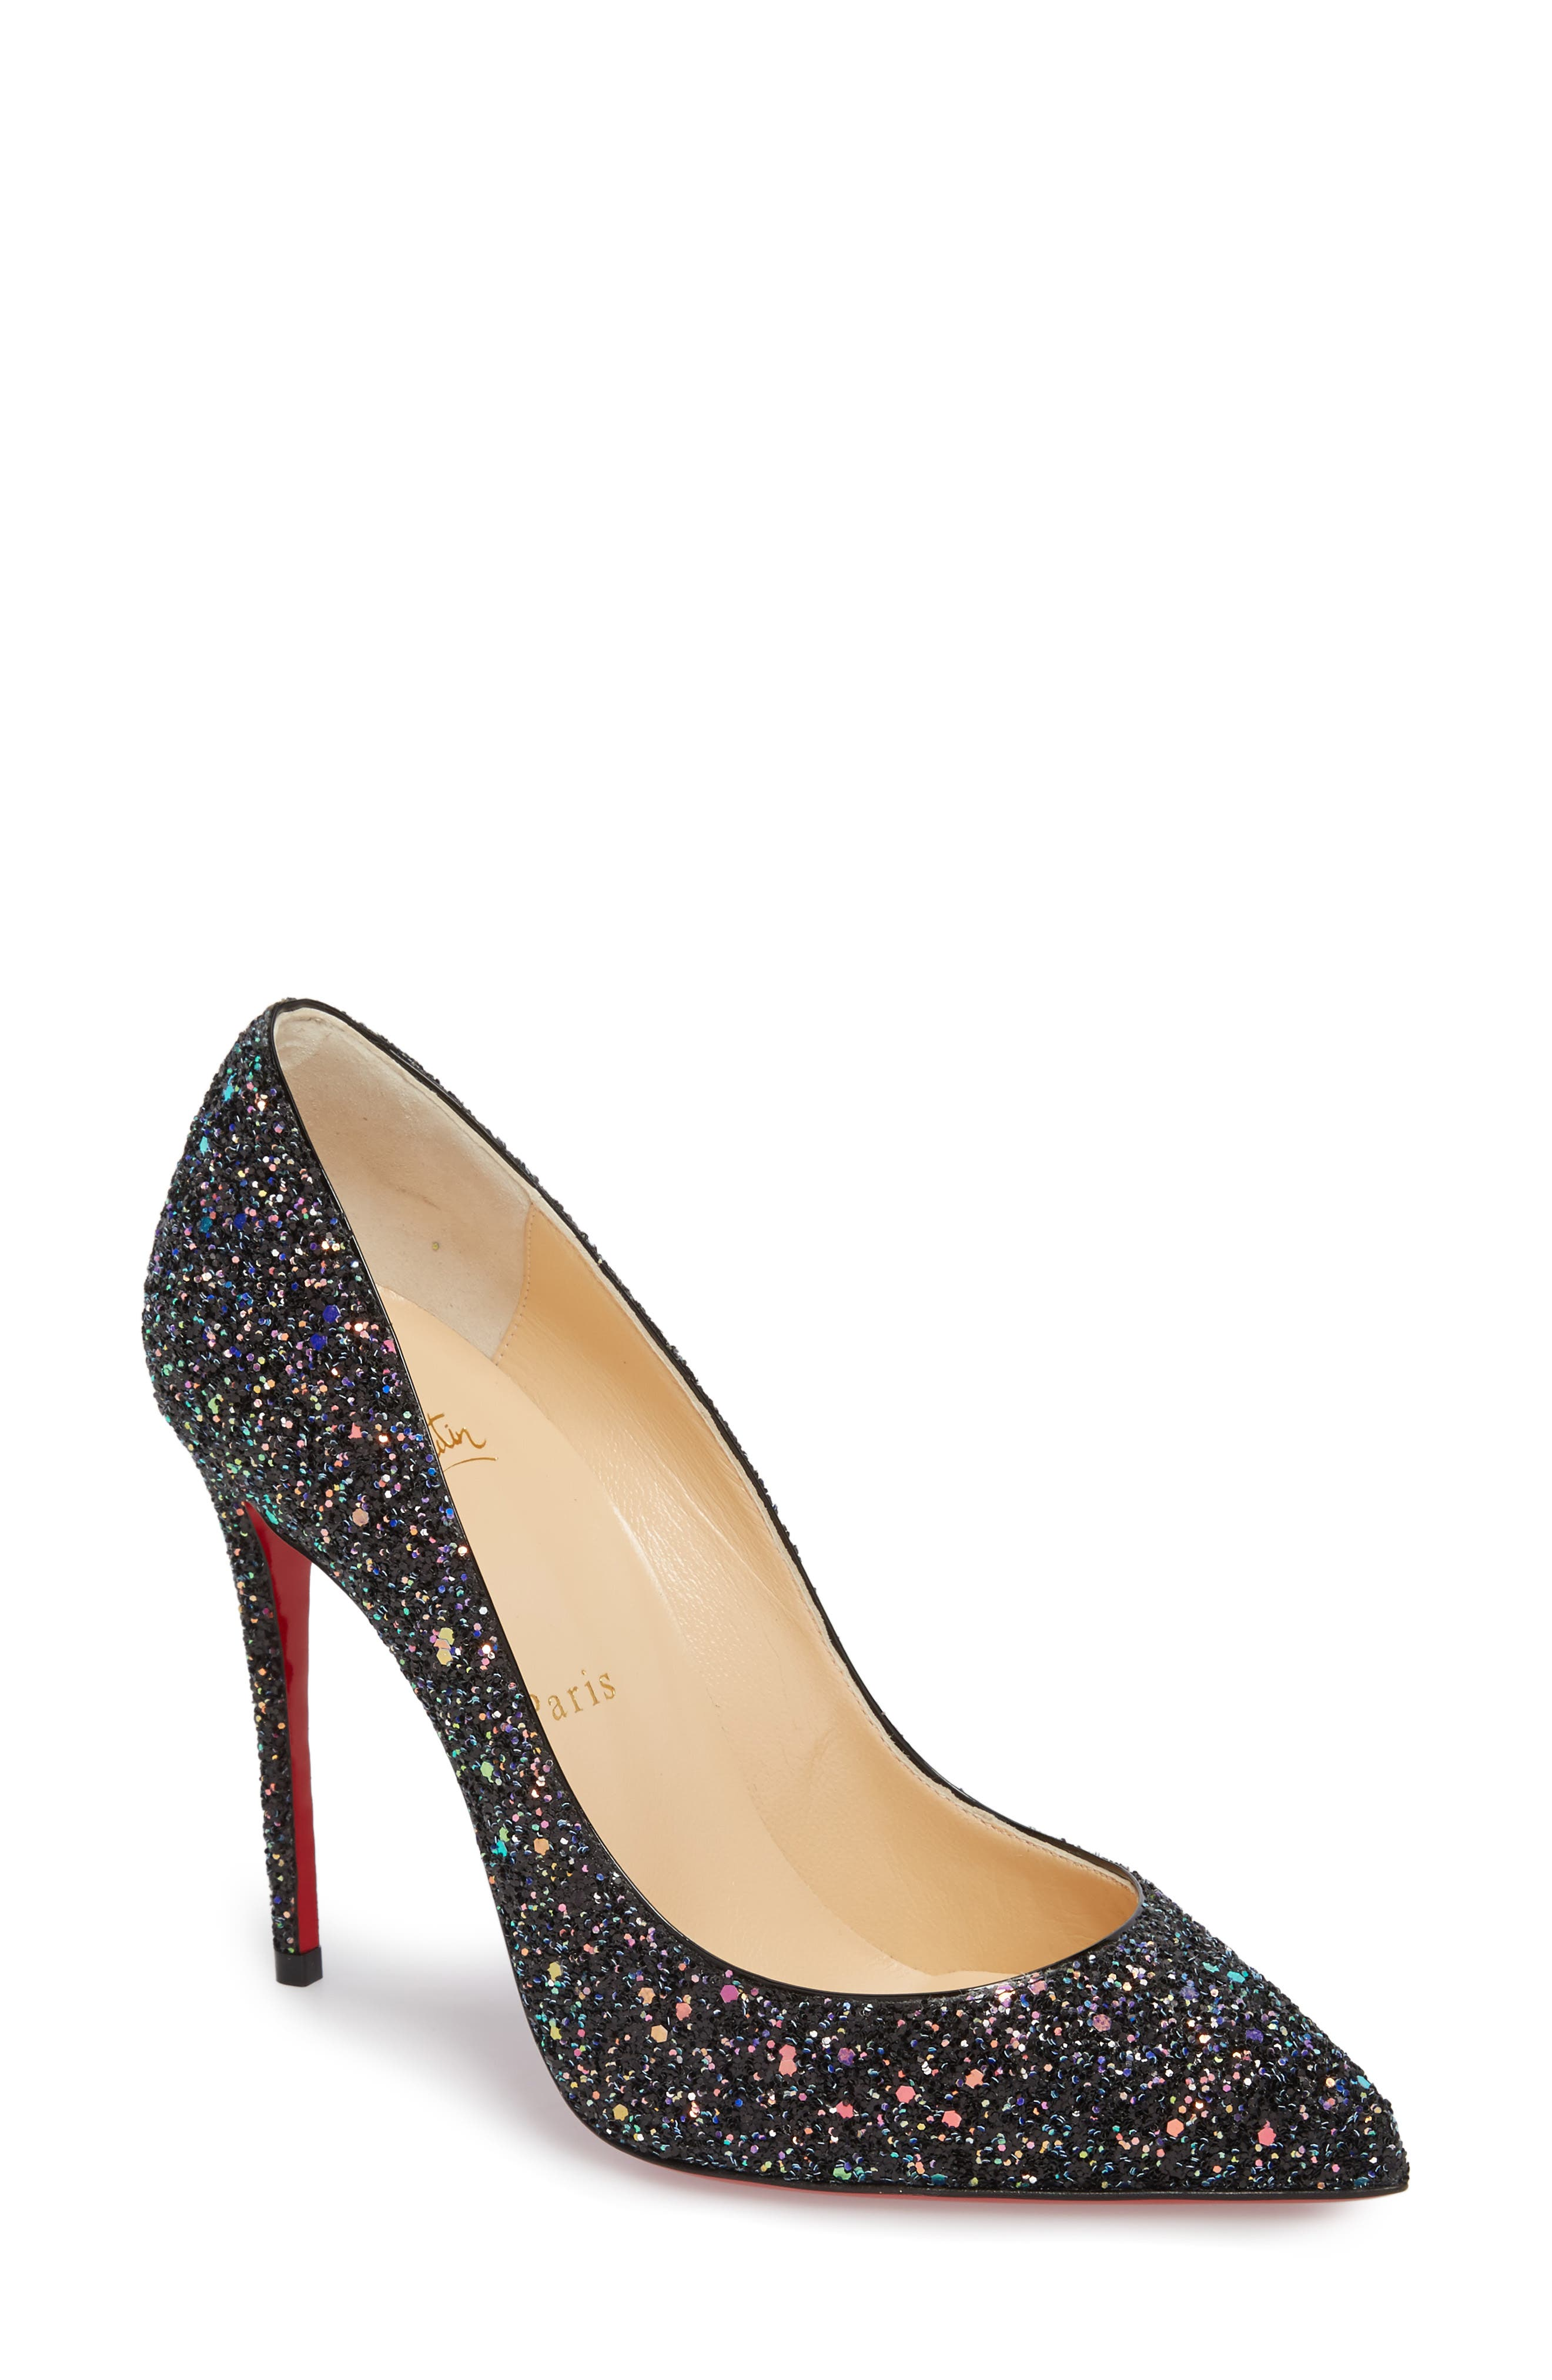 CHRISTIAN LOUBOUTIN PIGALLE FOLLIES GLITTER POINTY TOE PUMP, BLACK